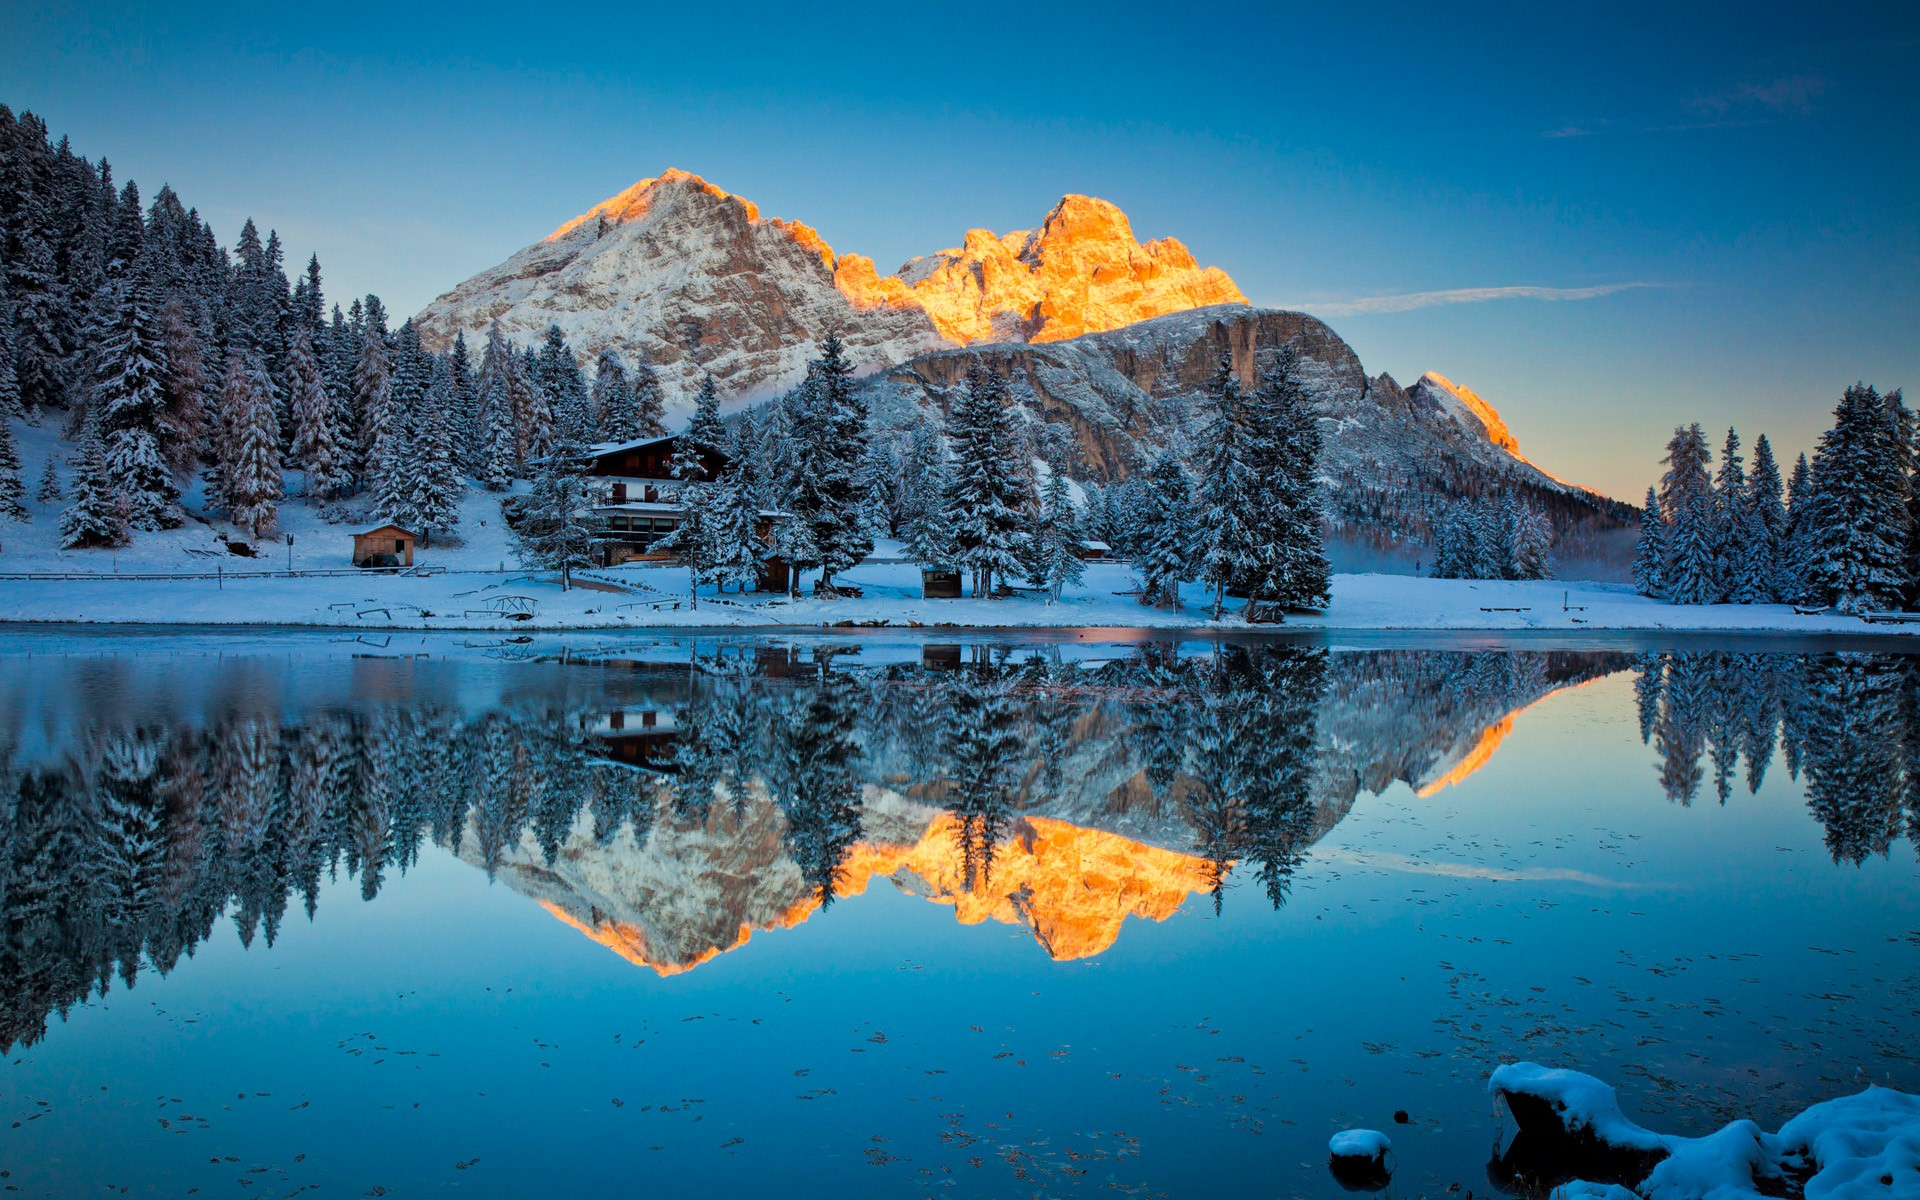 Misurina Lake Reflections, HD Nature, 4k Wallpapers ...